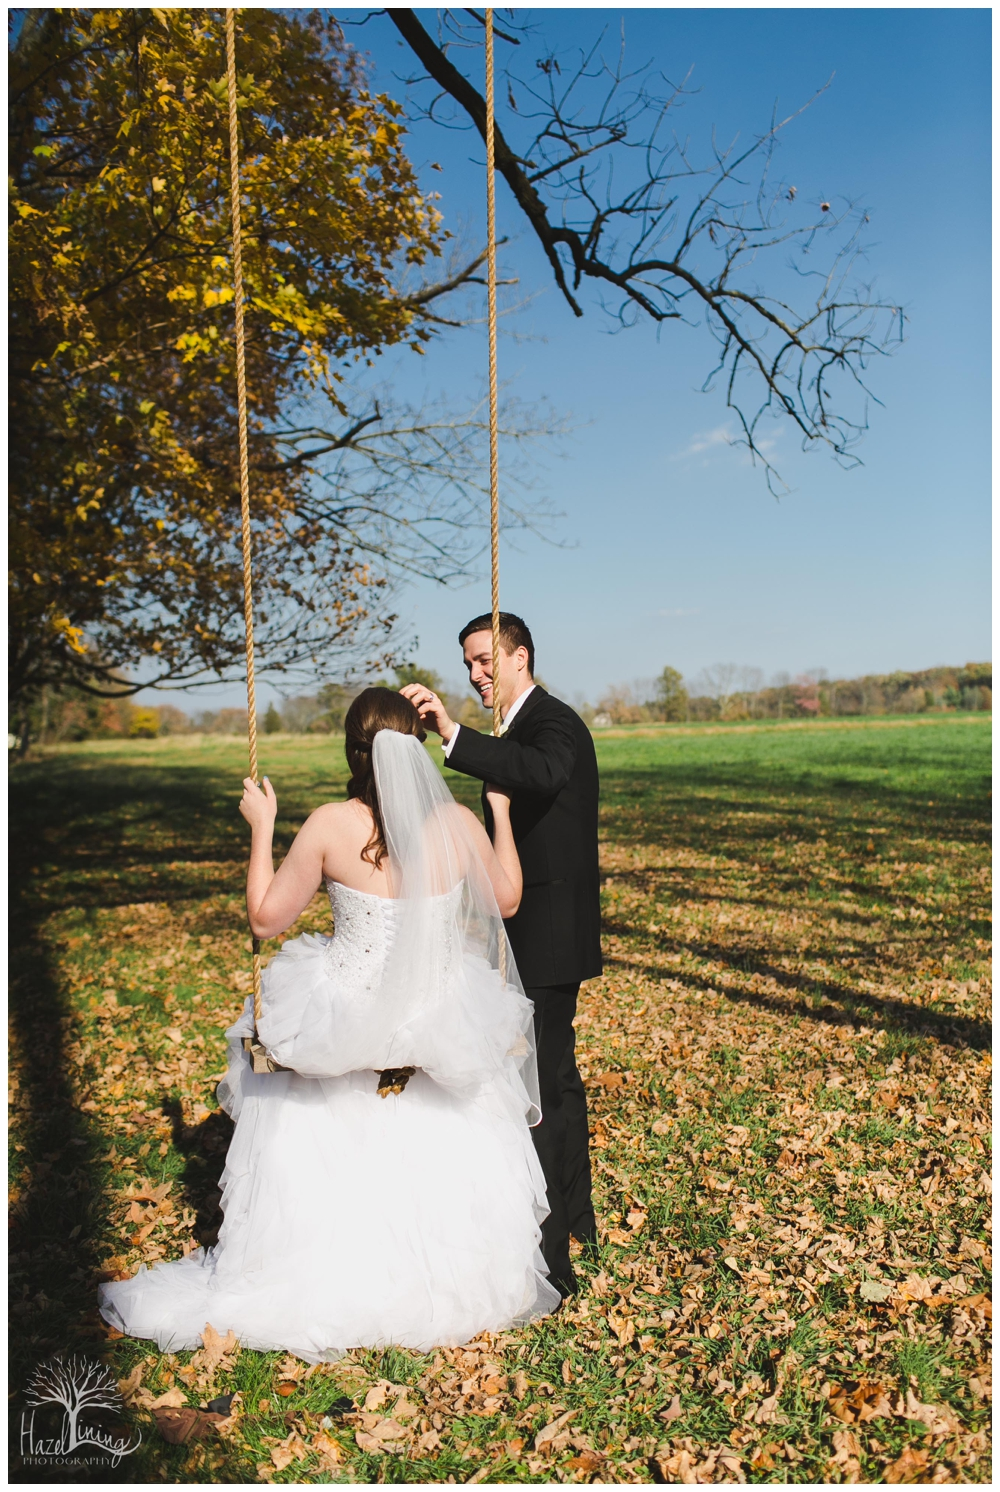 hazel-lining-photography-wedding-portrait-buckscounty-pennsylvania-stephanie-reif_0320.jpg